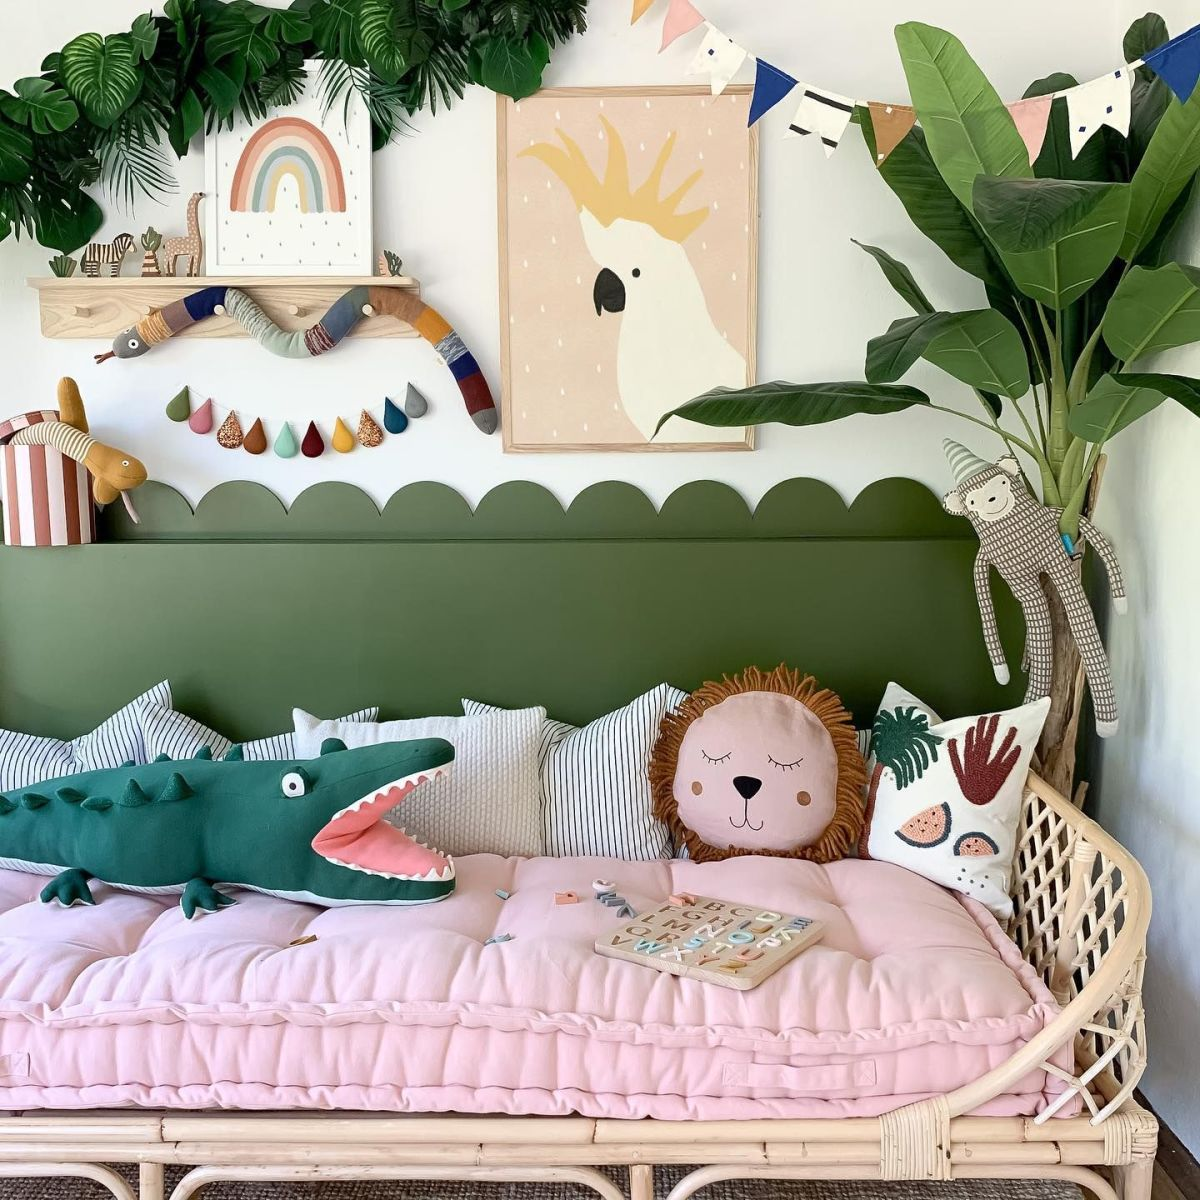 Kids pink and green decor. Jungles art theme for children's room. The rattan children's furniture. A neat rainbow wall art!